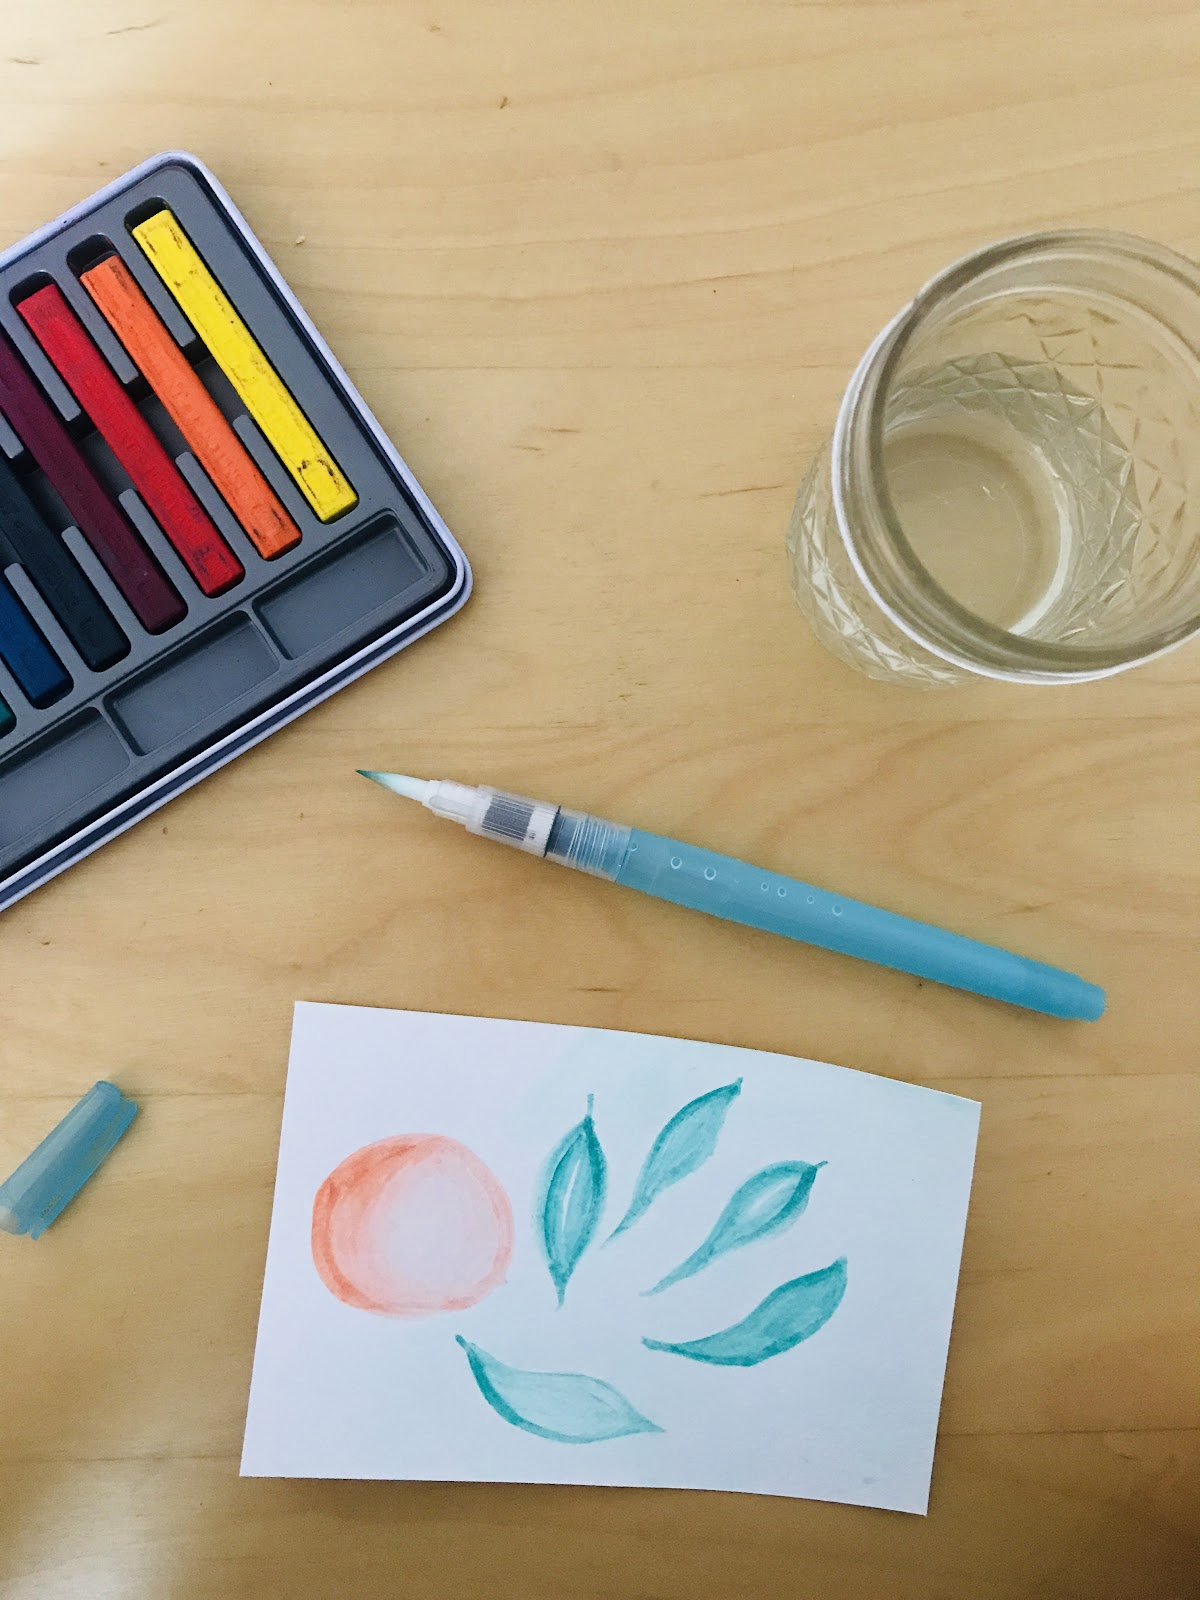 Photo of an abstract watercolor drawing and art supplies.